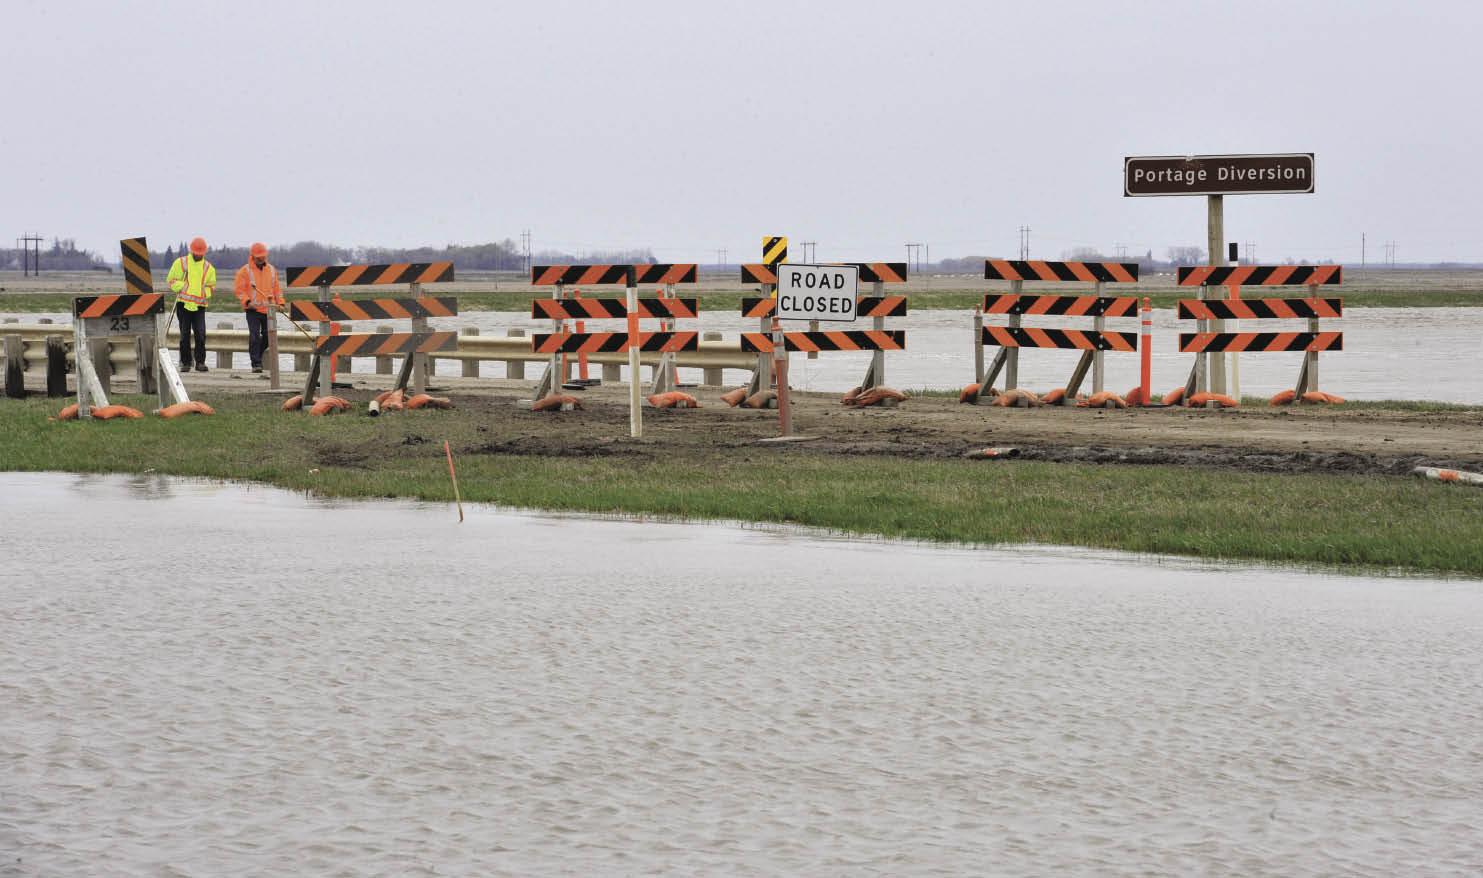 Flooding at Portage diversion in Manitoba.